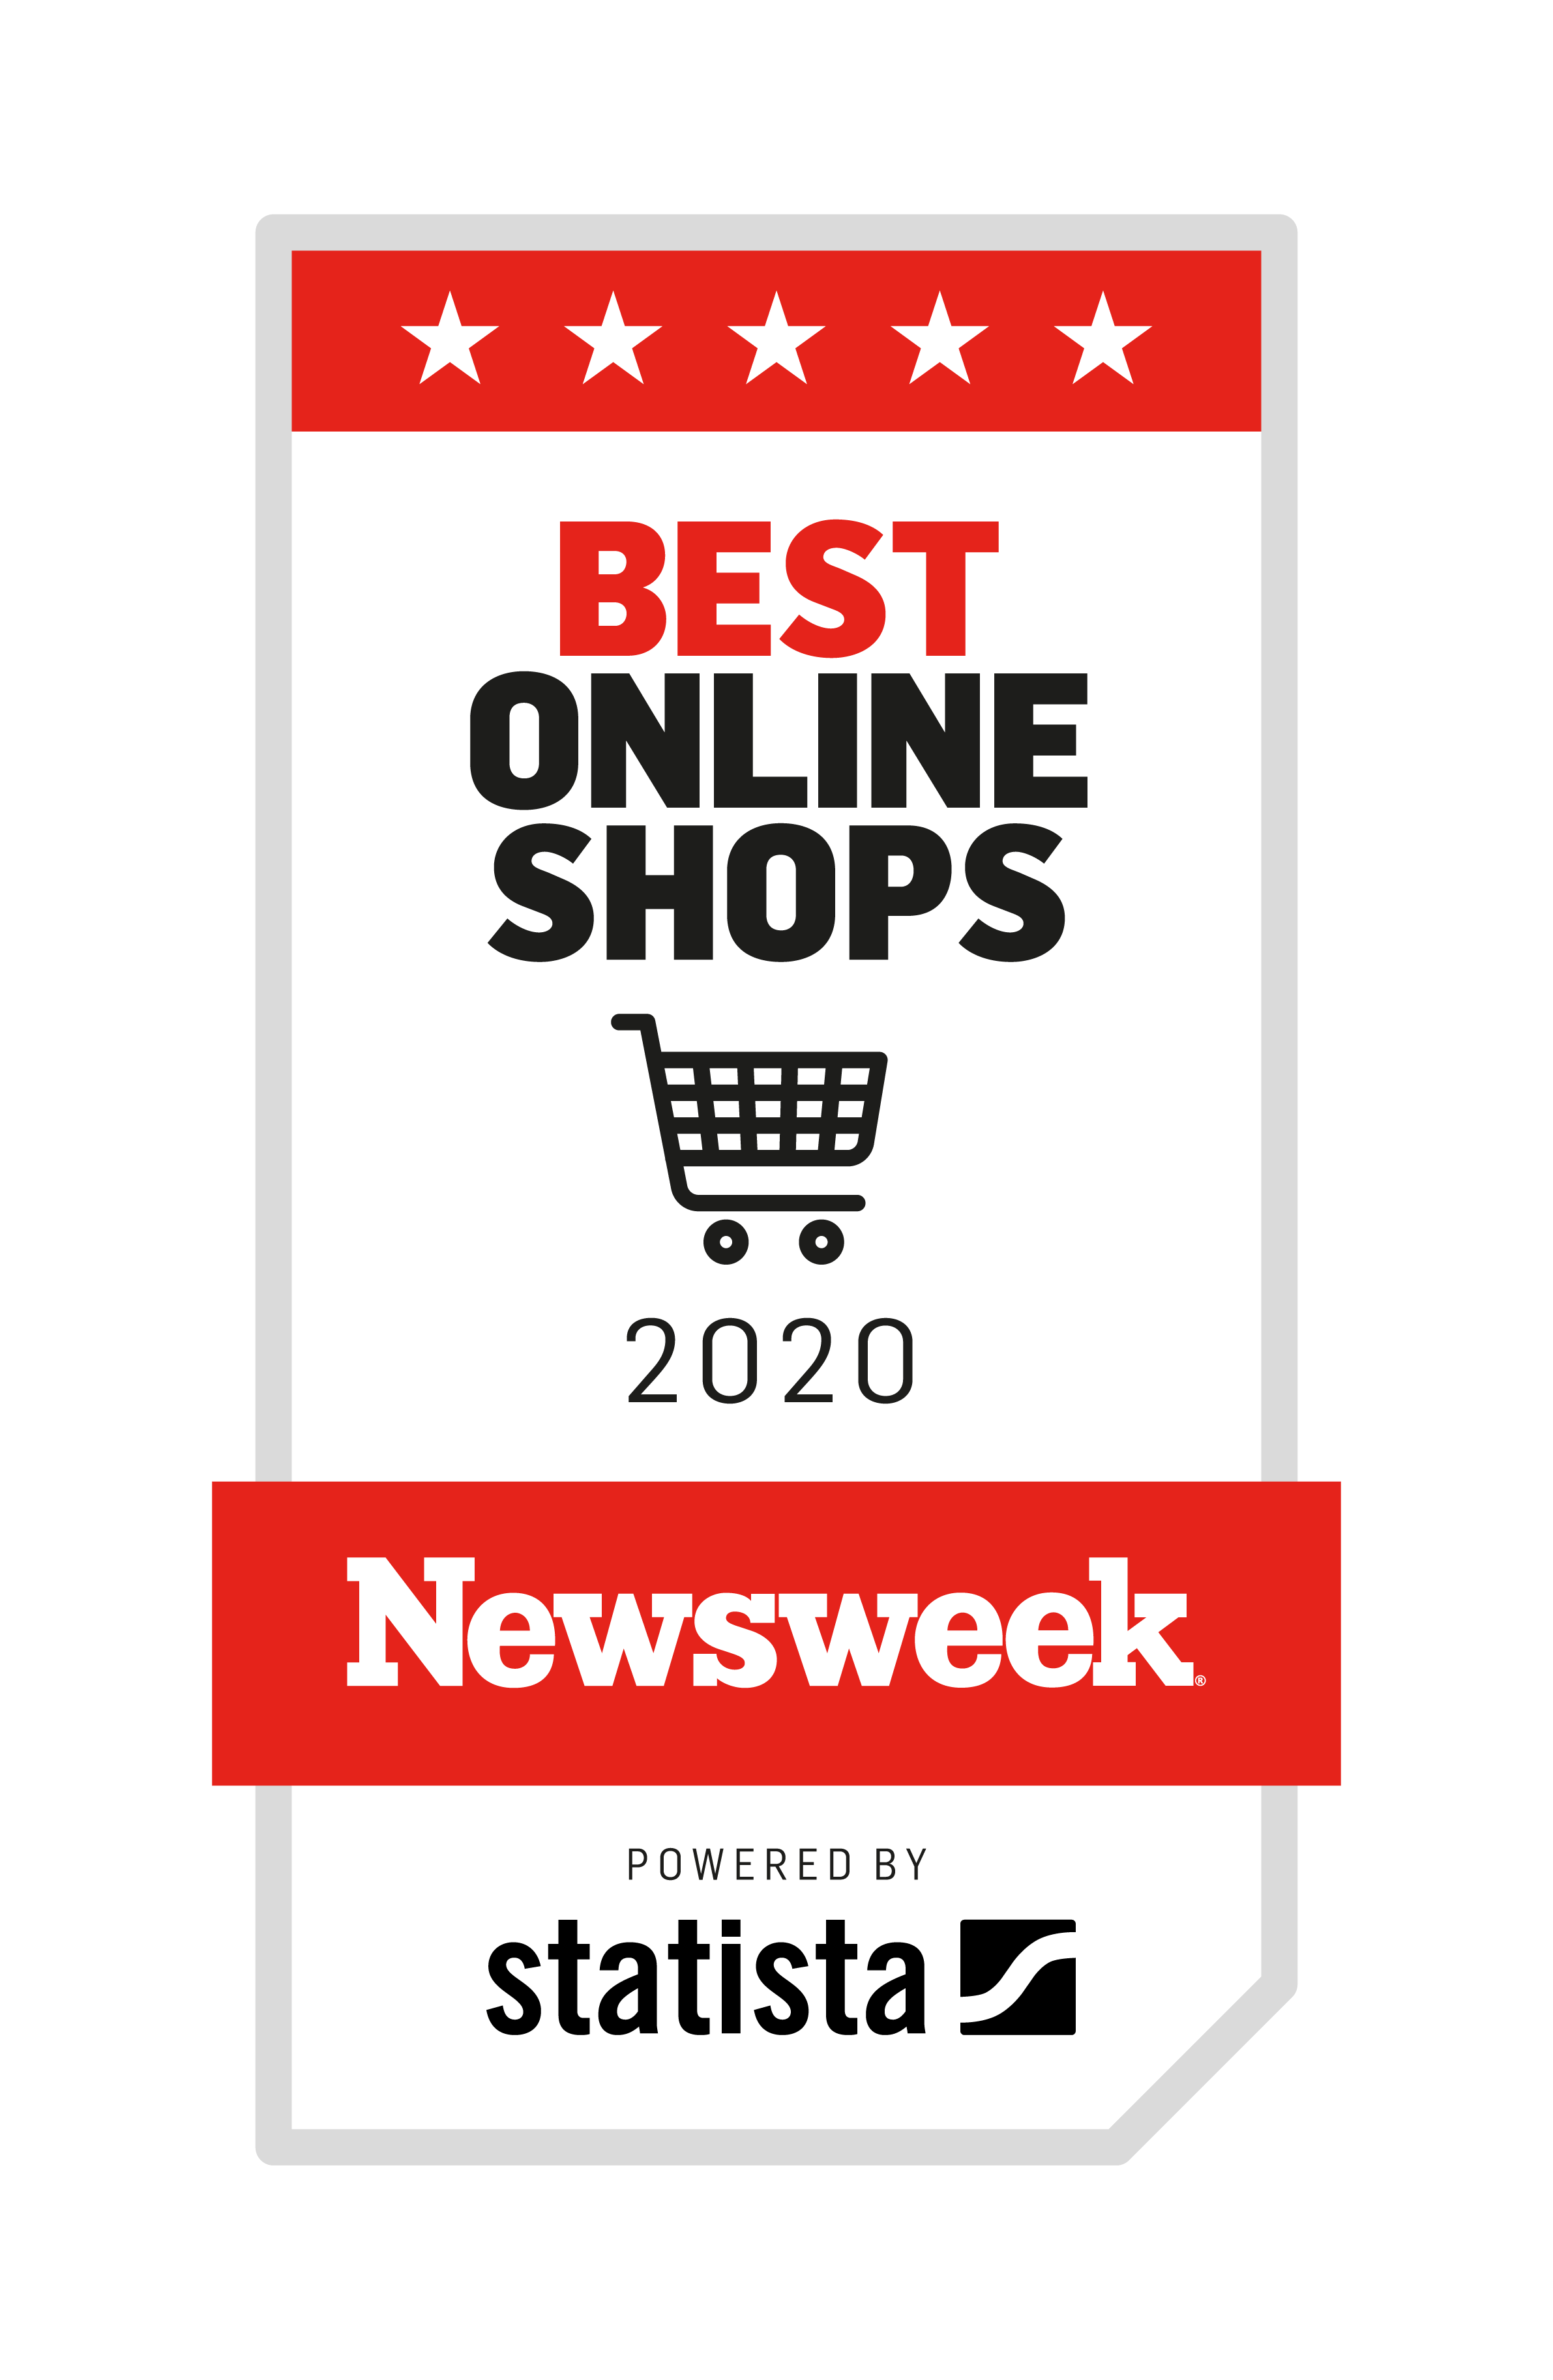 Best Online Shops of 2020 Newsweek banner